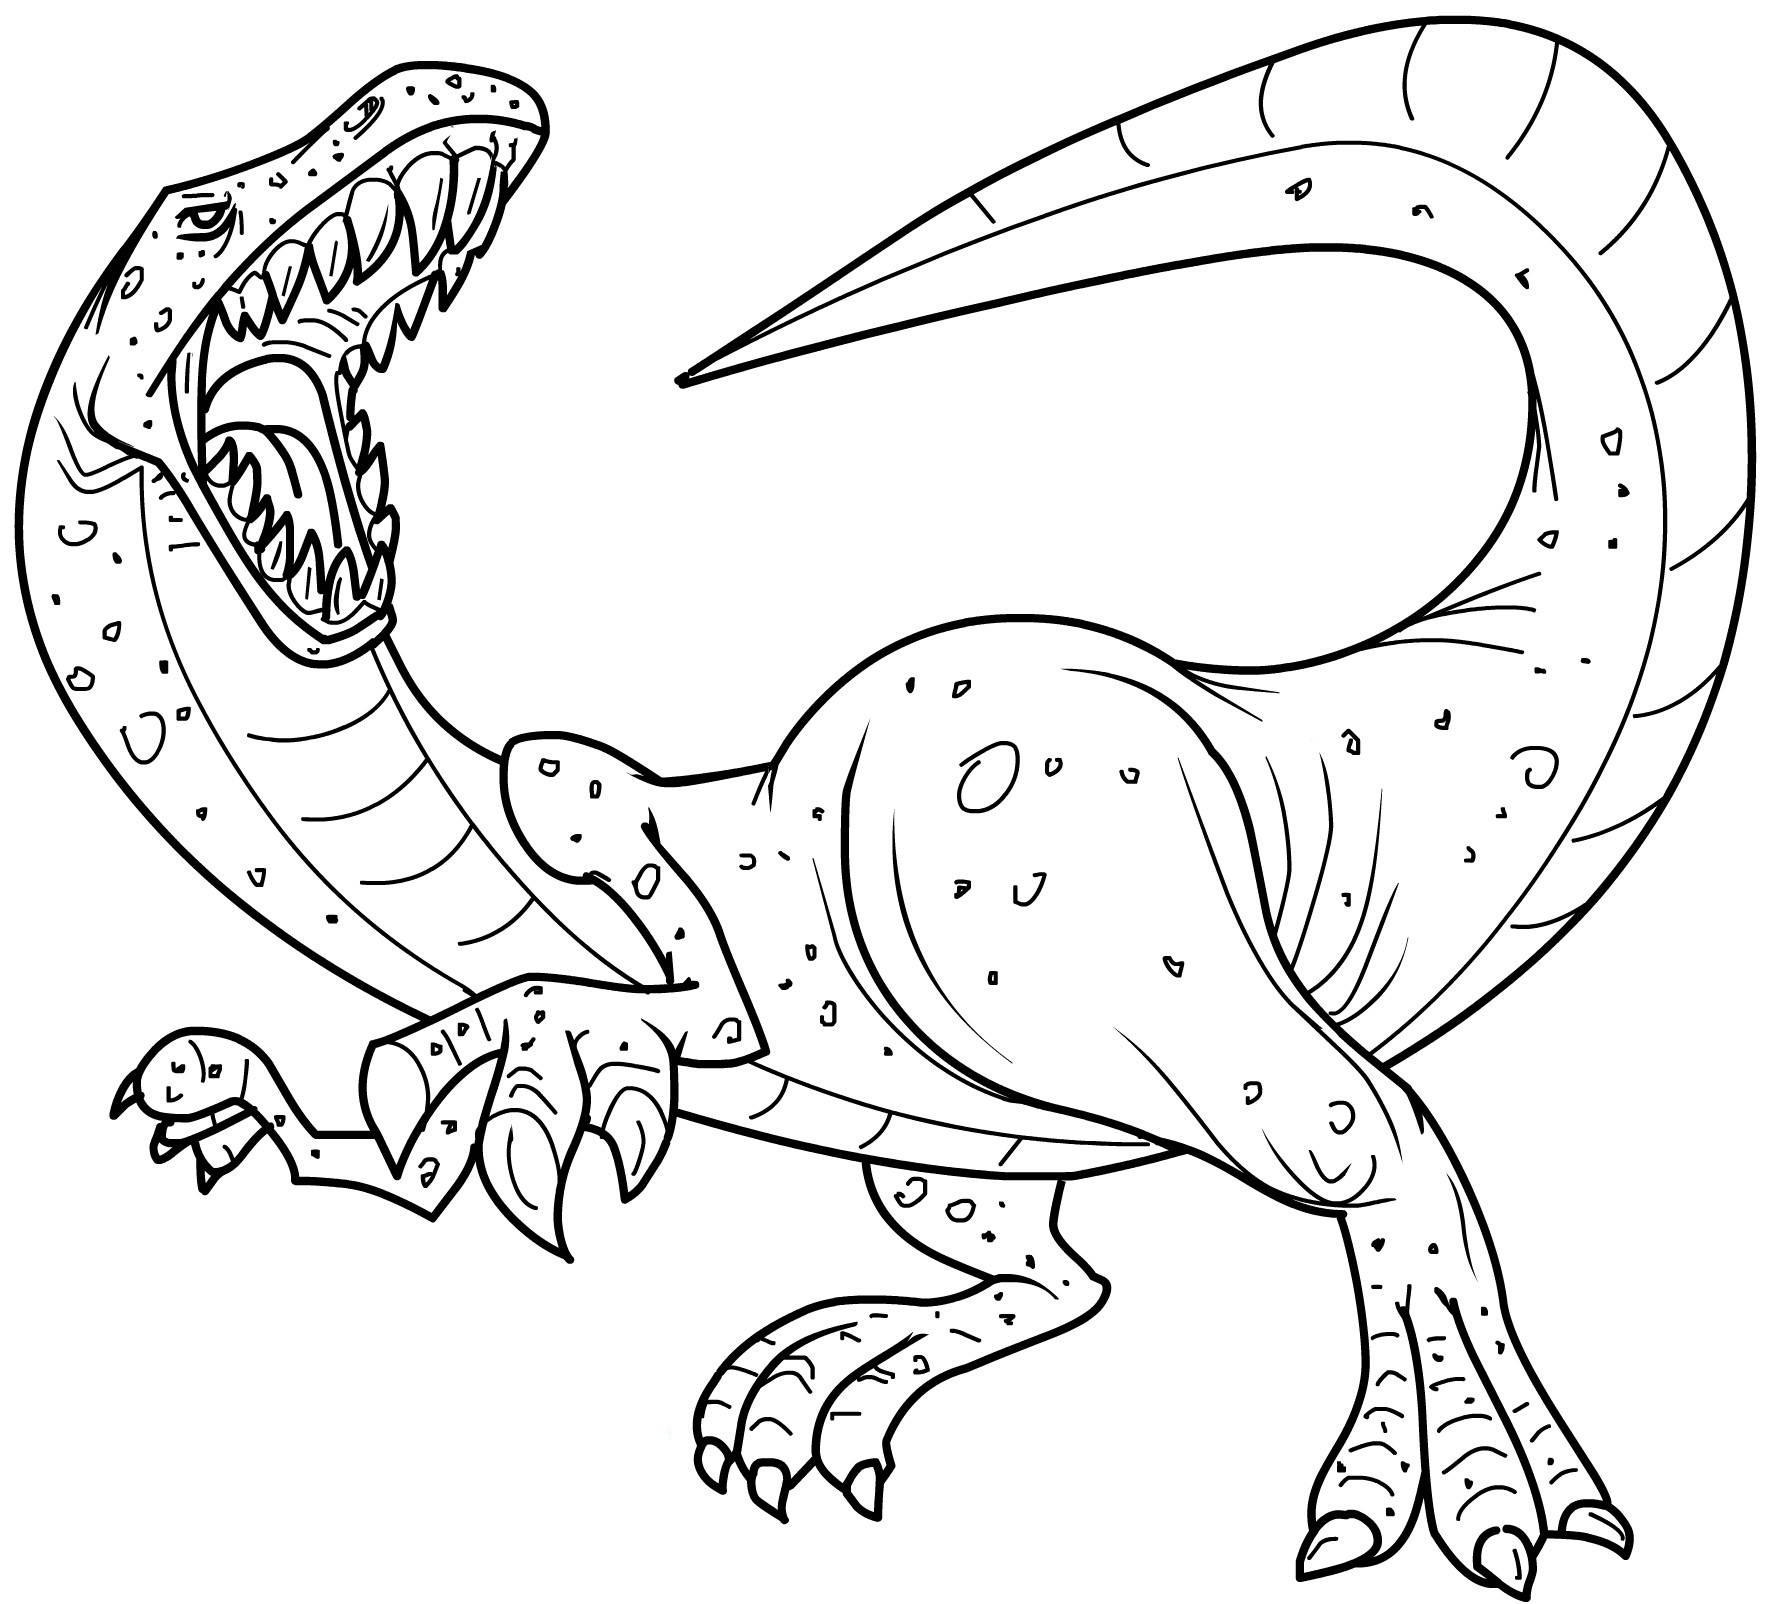 cartoon dinosaur coloring pictures httpcoloringscocartoon animal colouring pages pictures coloring dinosaur cartoon